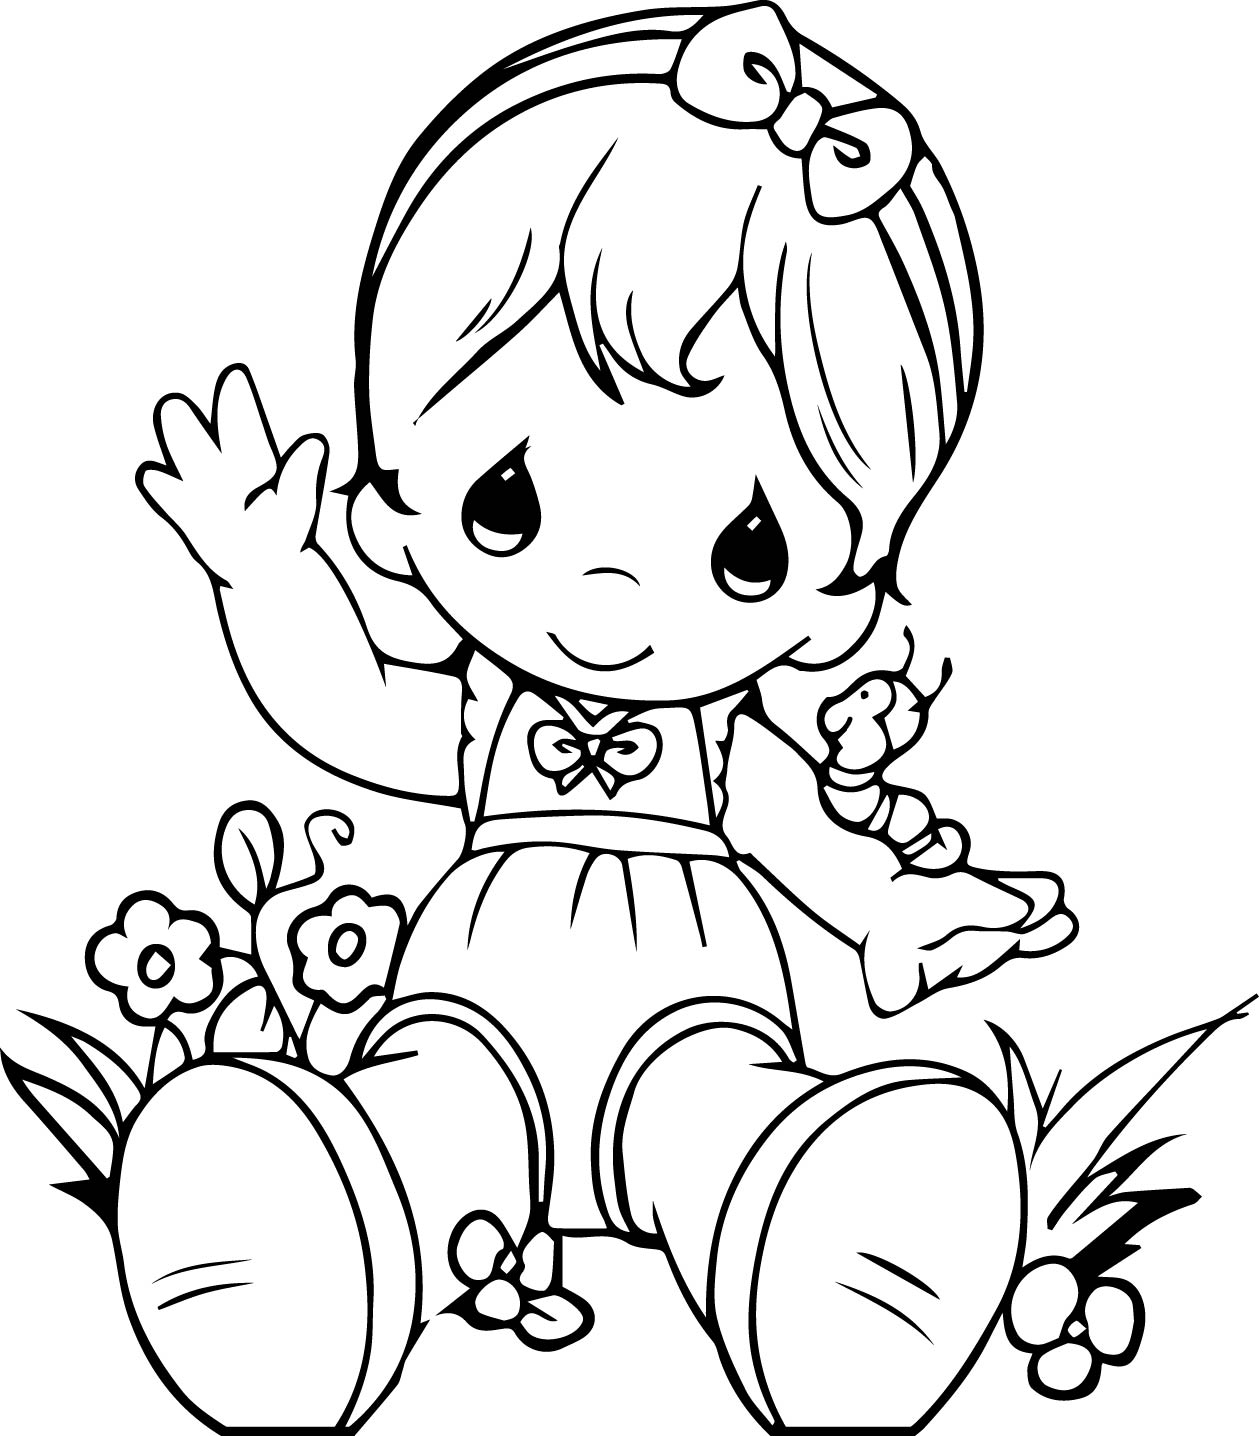 Precious moments girl coloring page wecoloringpagecom, precious moments love coloring pages